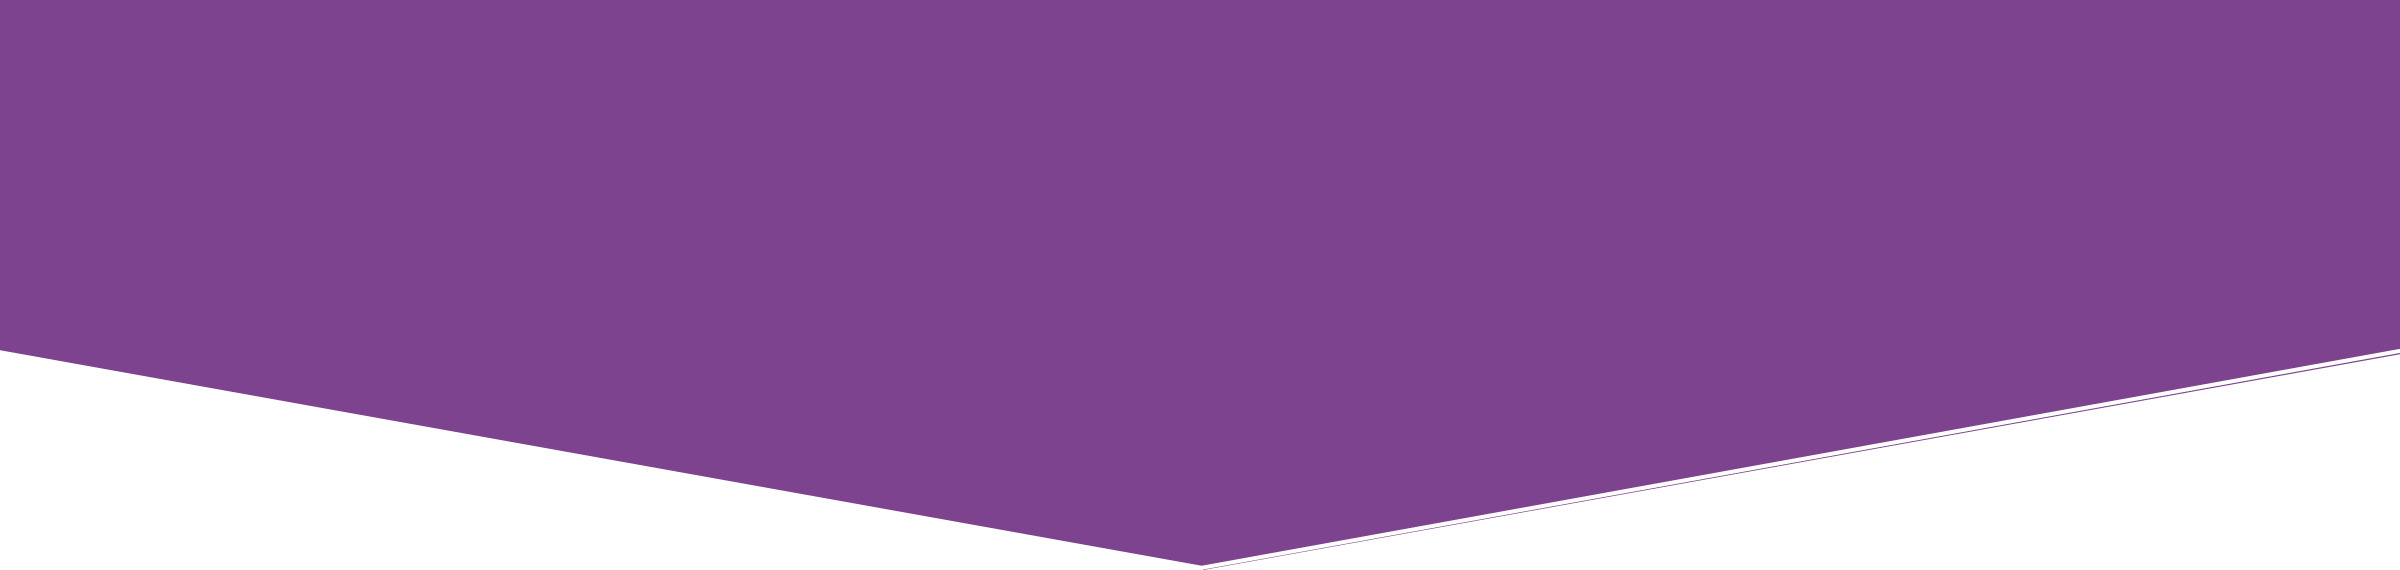 purple footer shape